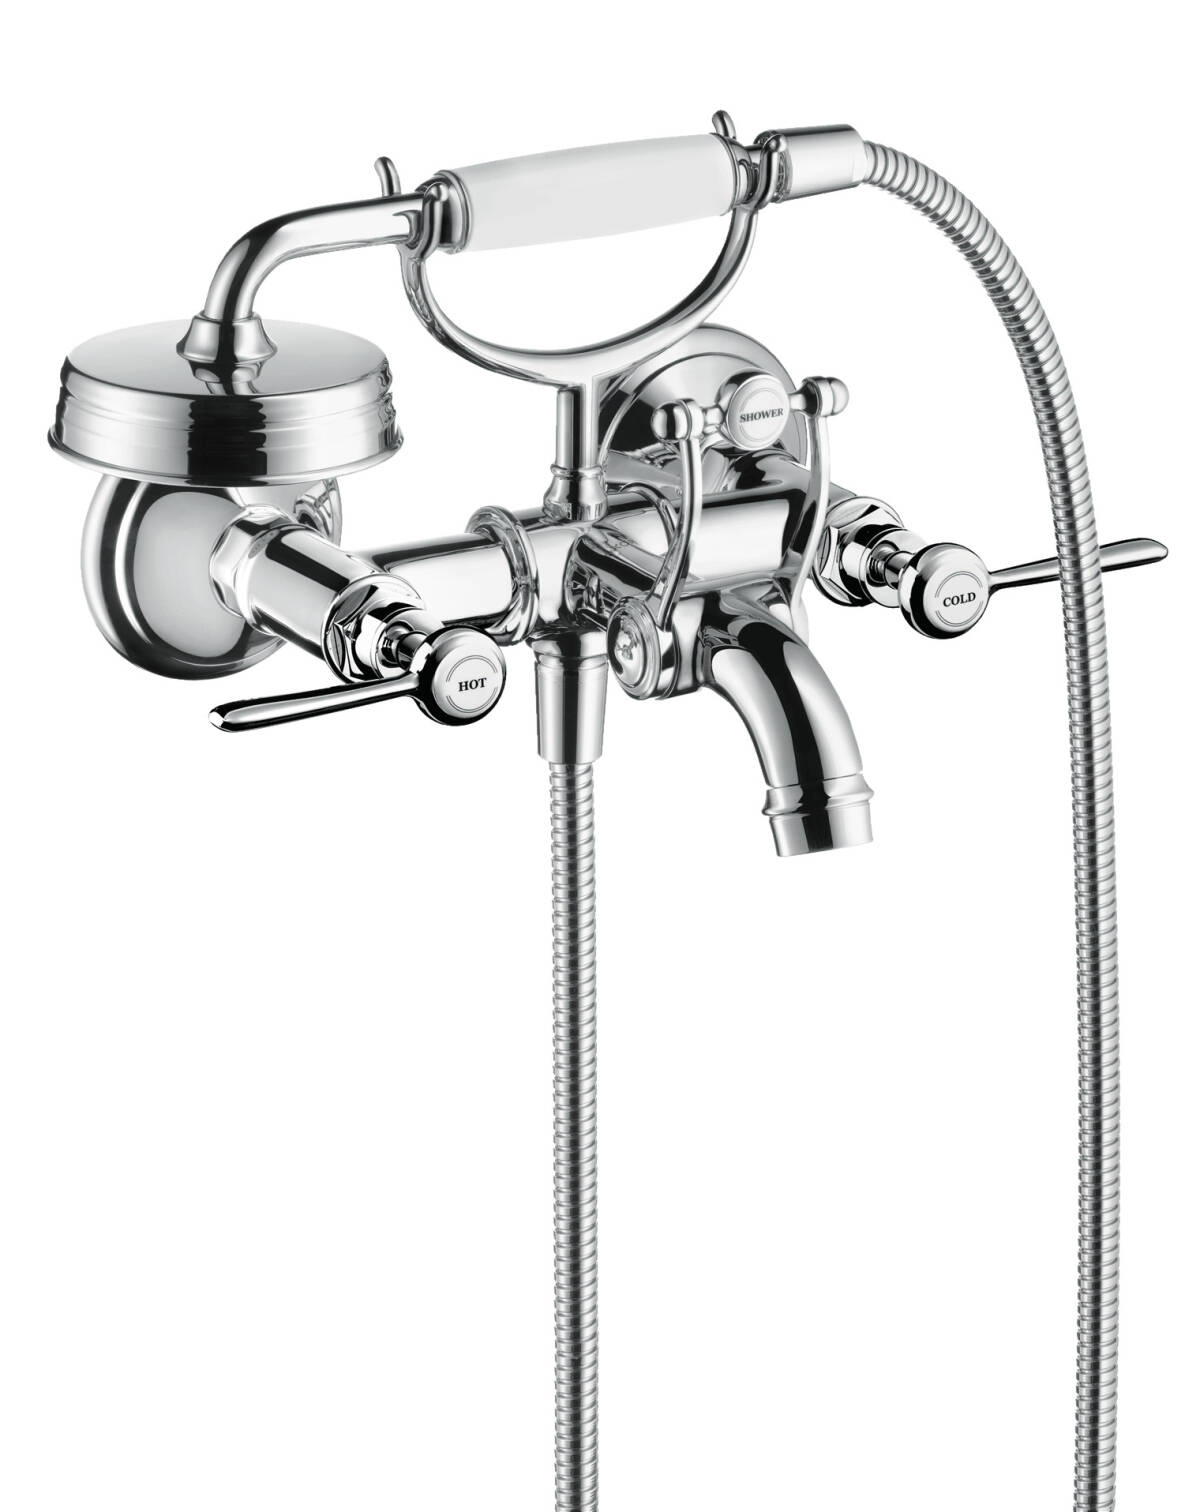 2-handle bath mixer for exposed installation with lever handles, Chrome, 16551000